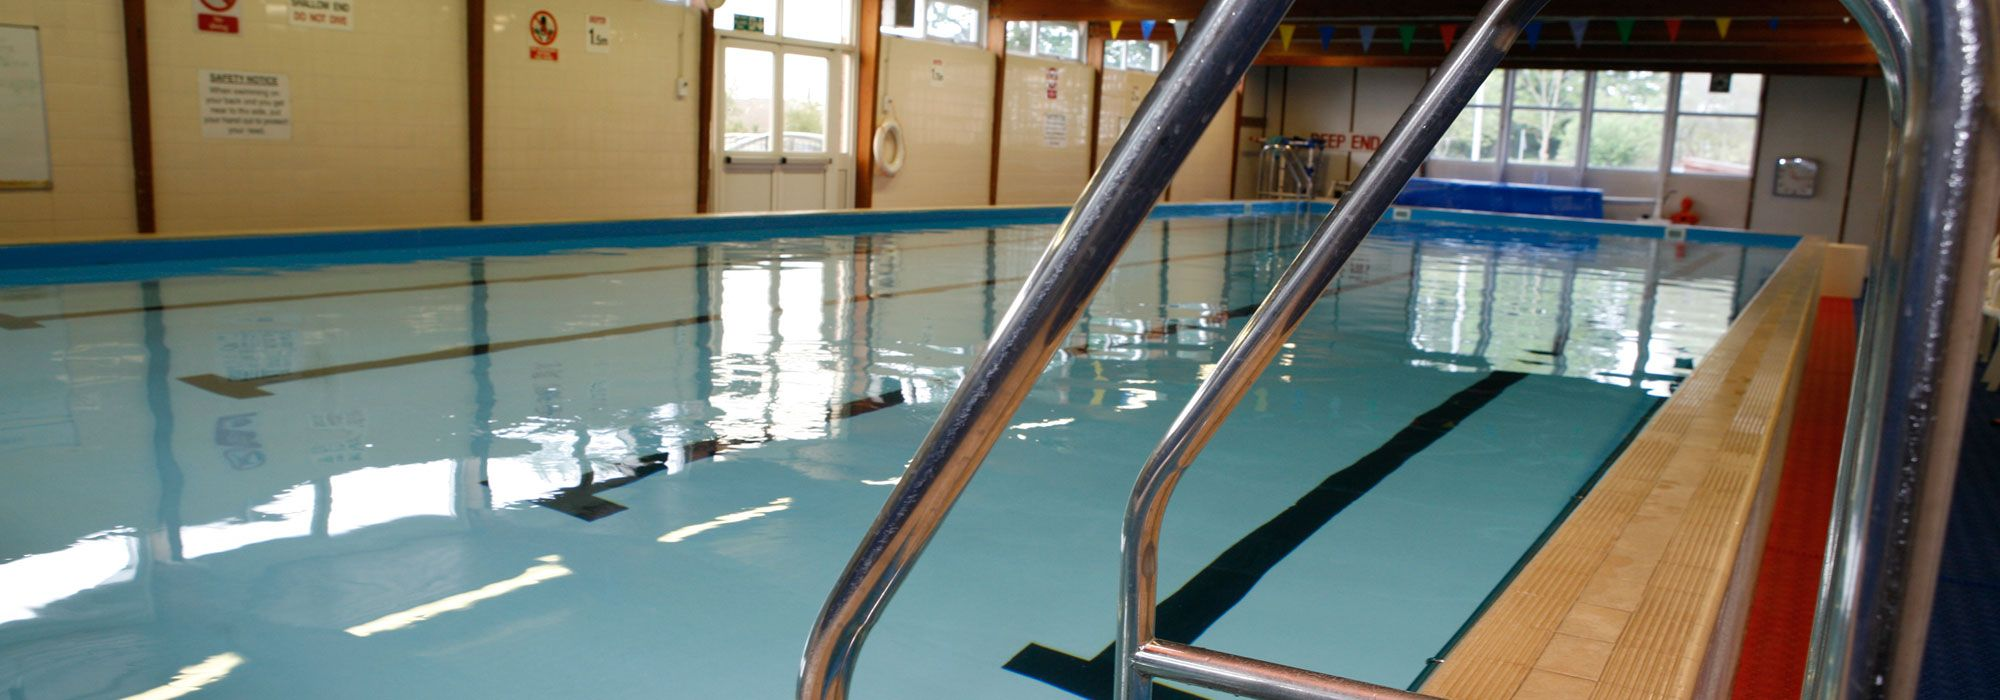 Swimming pool in Penley, Wrexham